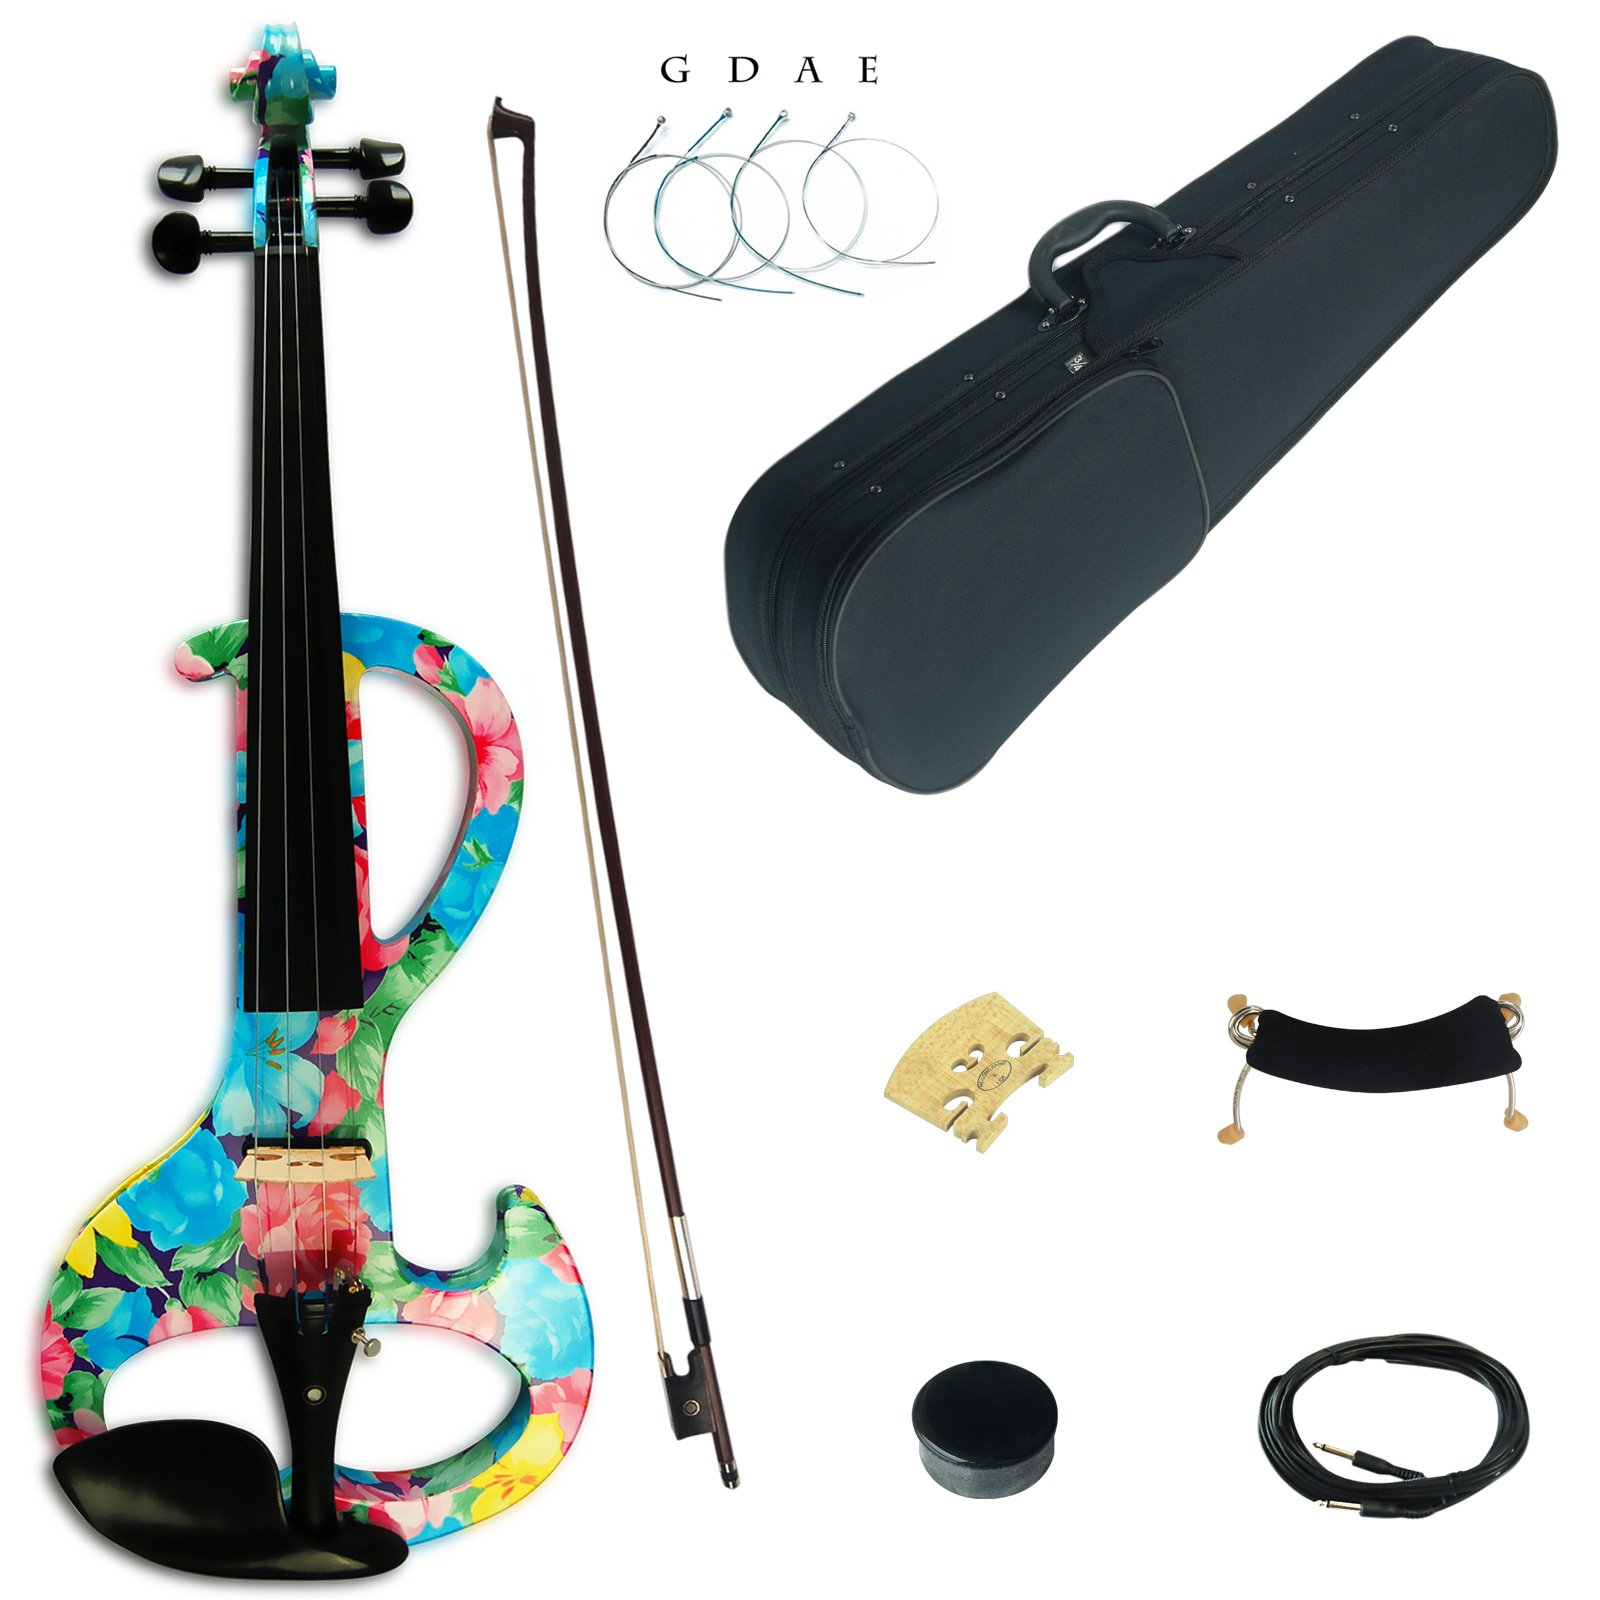 Kinglos 4/4 Blue Pink Flower Colored Solid Wood Intermediate-A Electric / Silent Violin Kit with Ebony Fittings Full Size (DSZA1002) by Kinglos